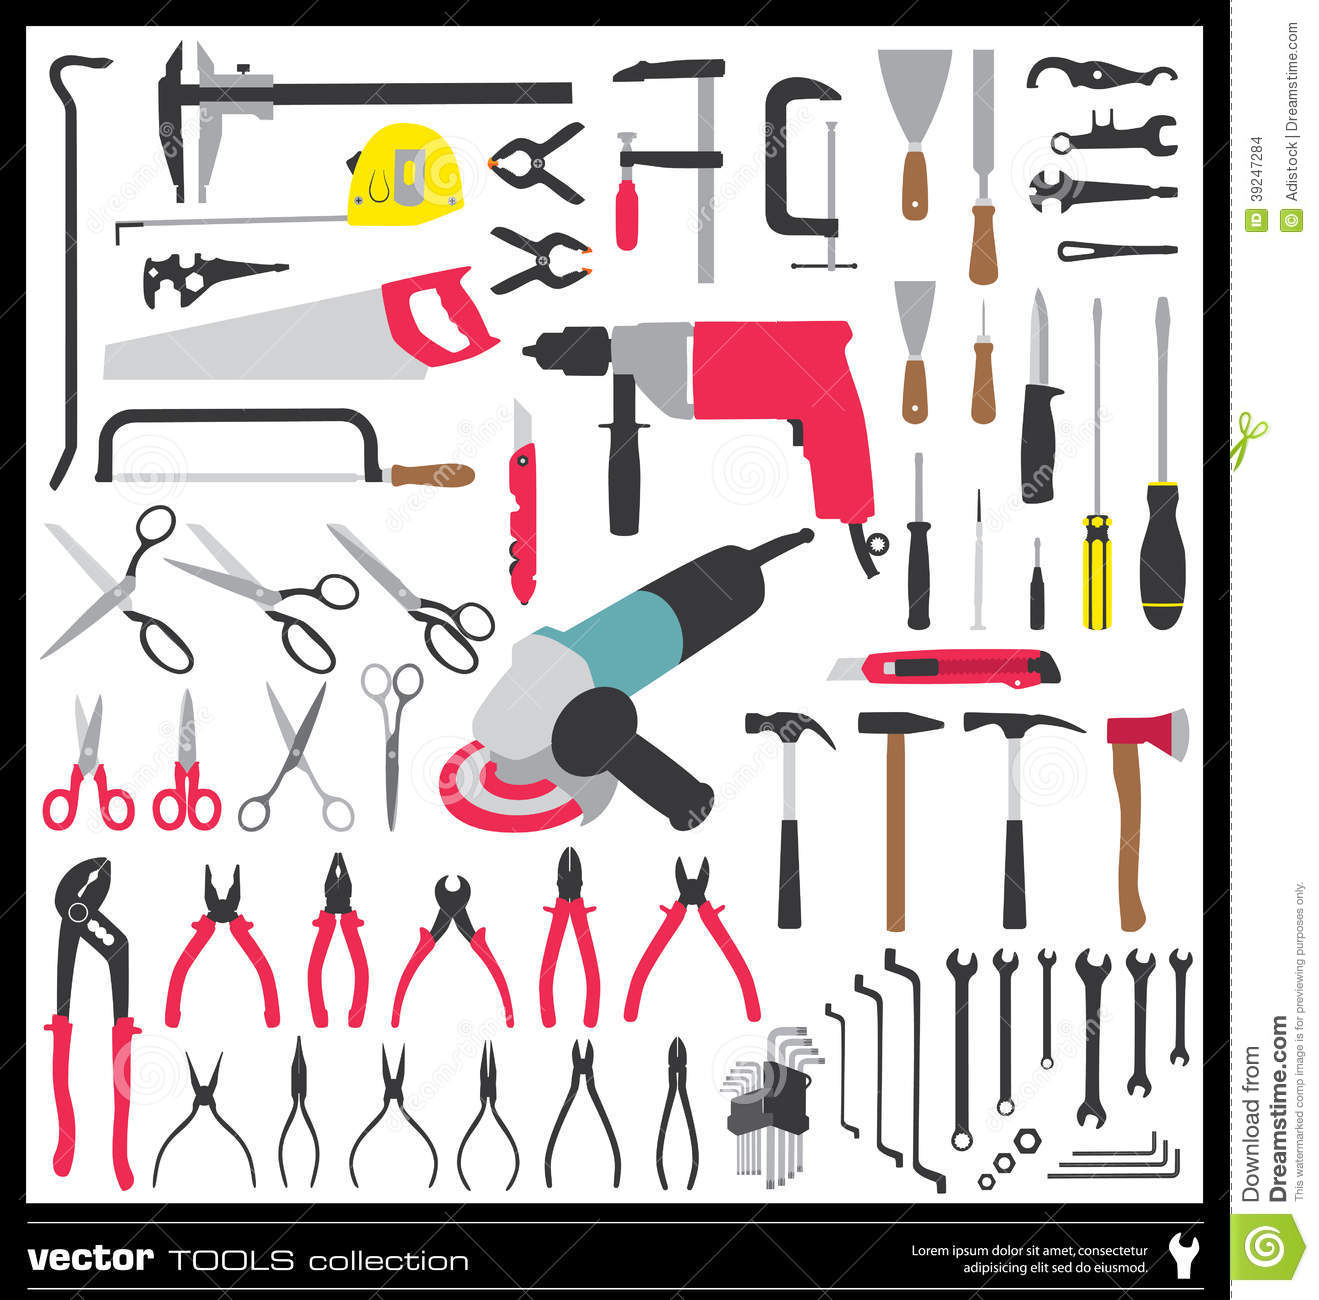 silhouettes of tools royalty free stock image 65346502. Black Bedroom Furniture Sets. Home Design Ideas